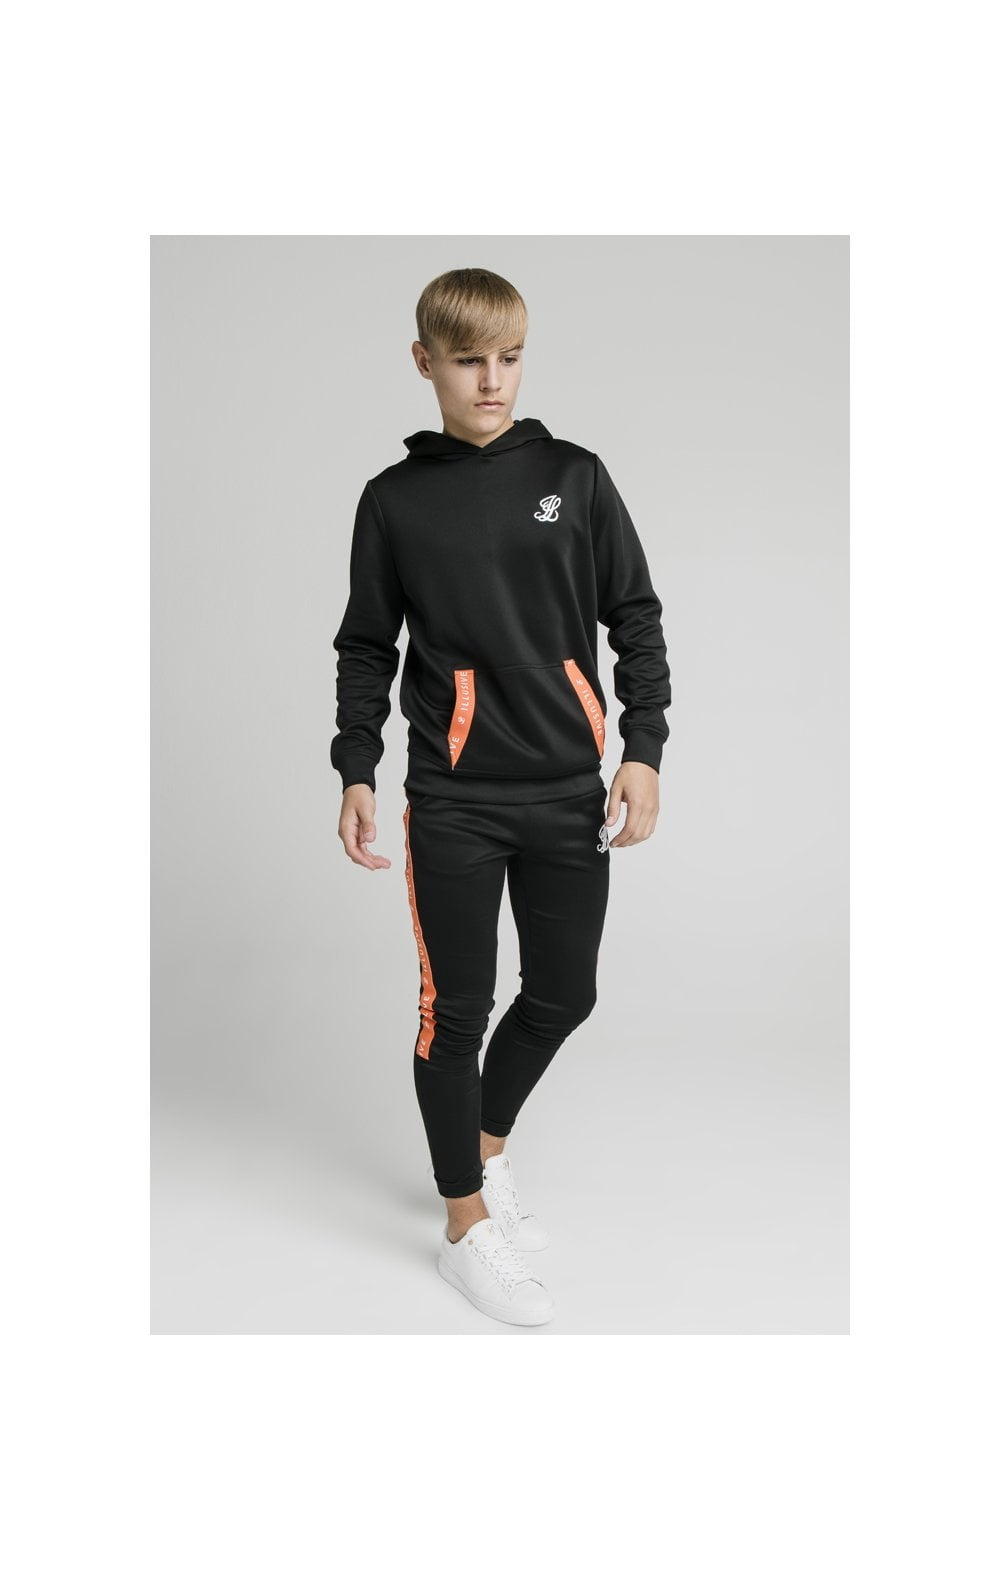 Illusive London Tape Joggers - Black (4)